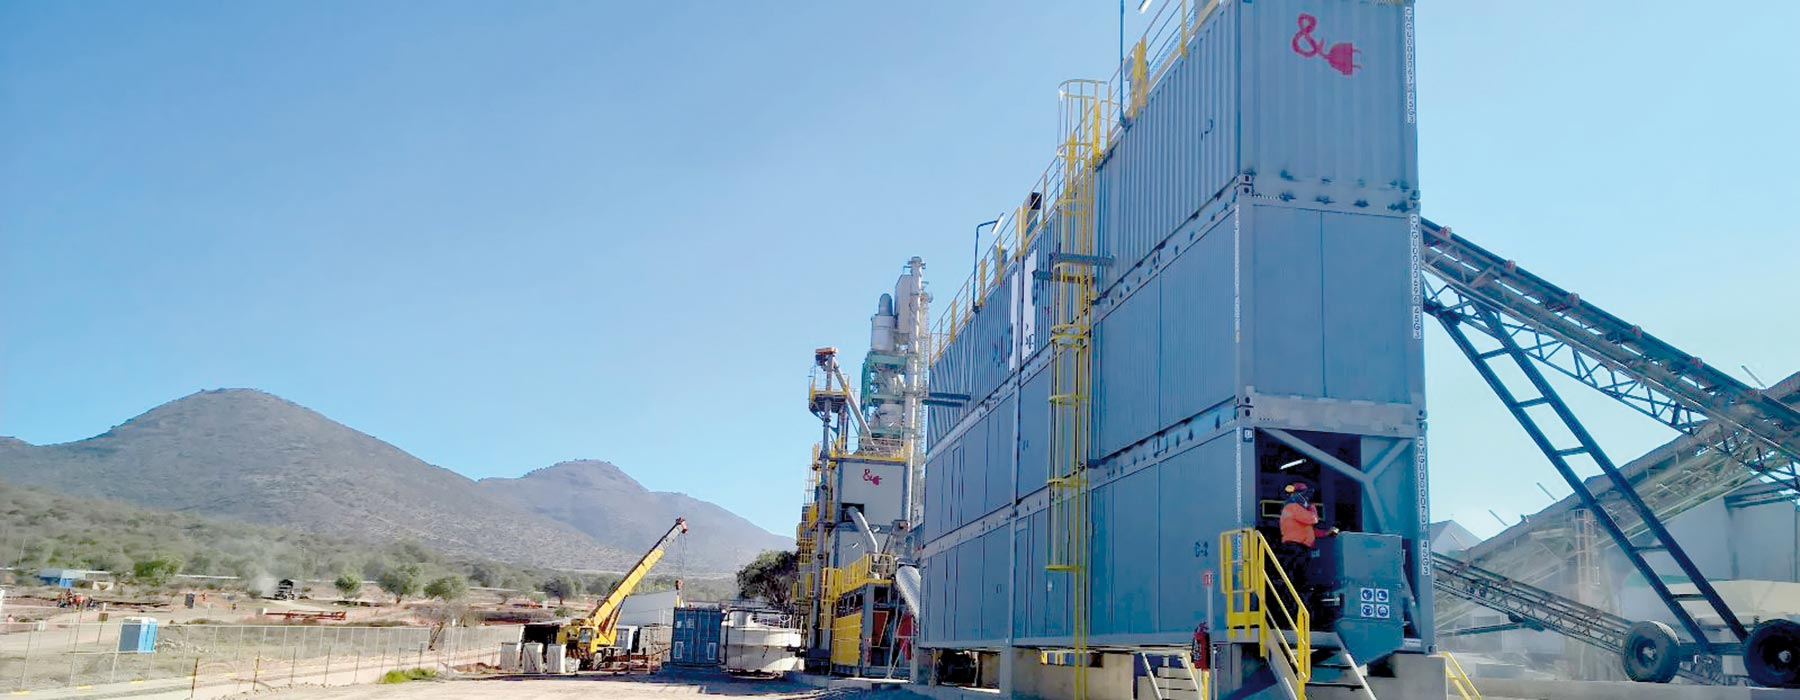 cement grinding station High-capacity grinding with exceptional availability october 2017  and two  cement grinding stations, with a combined capacity of 55 million.